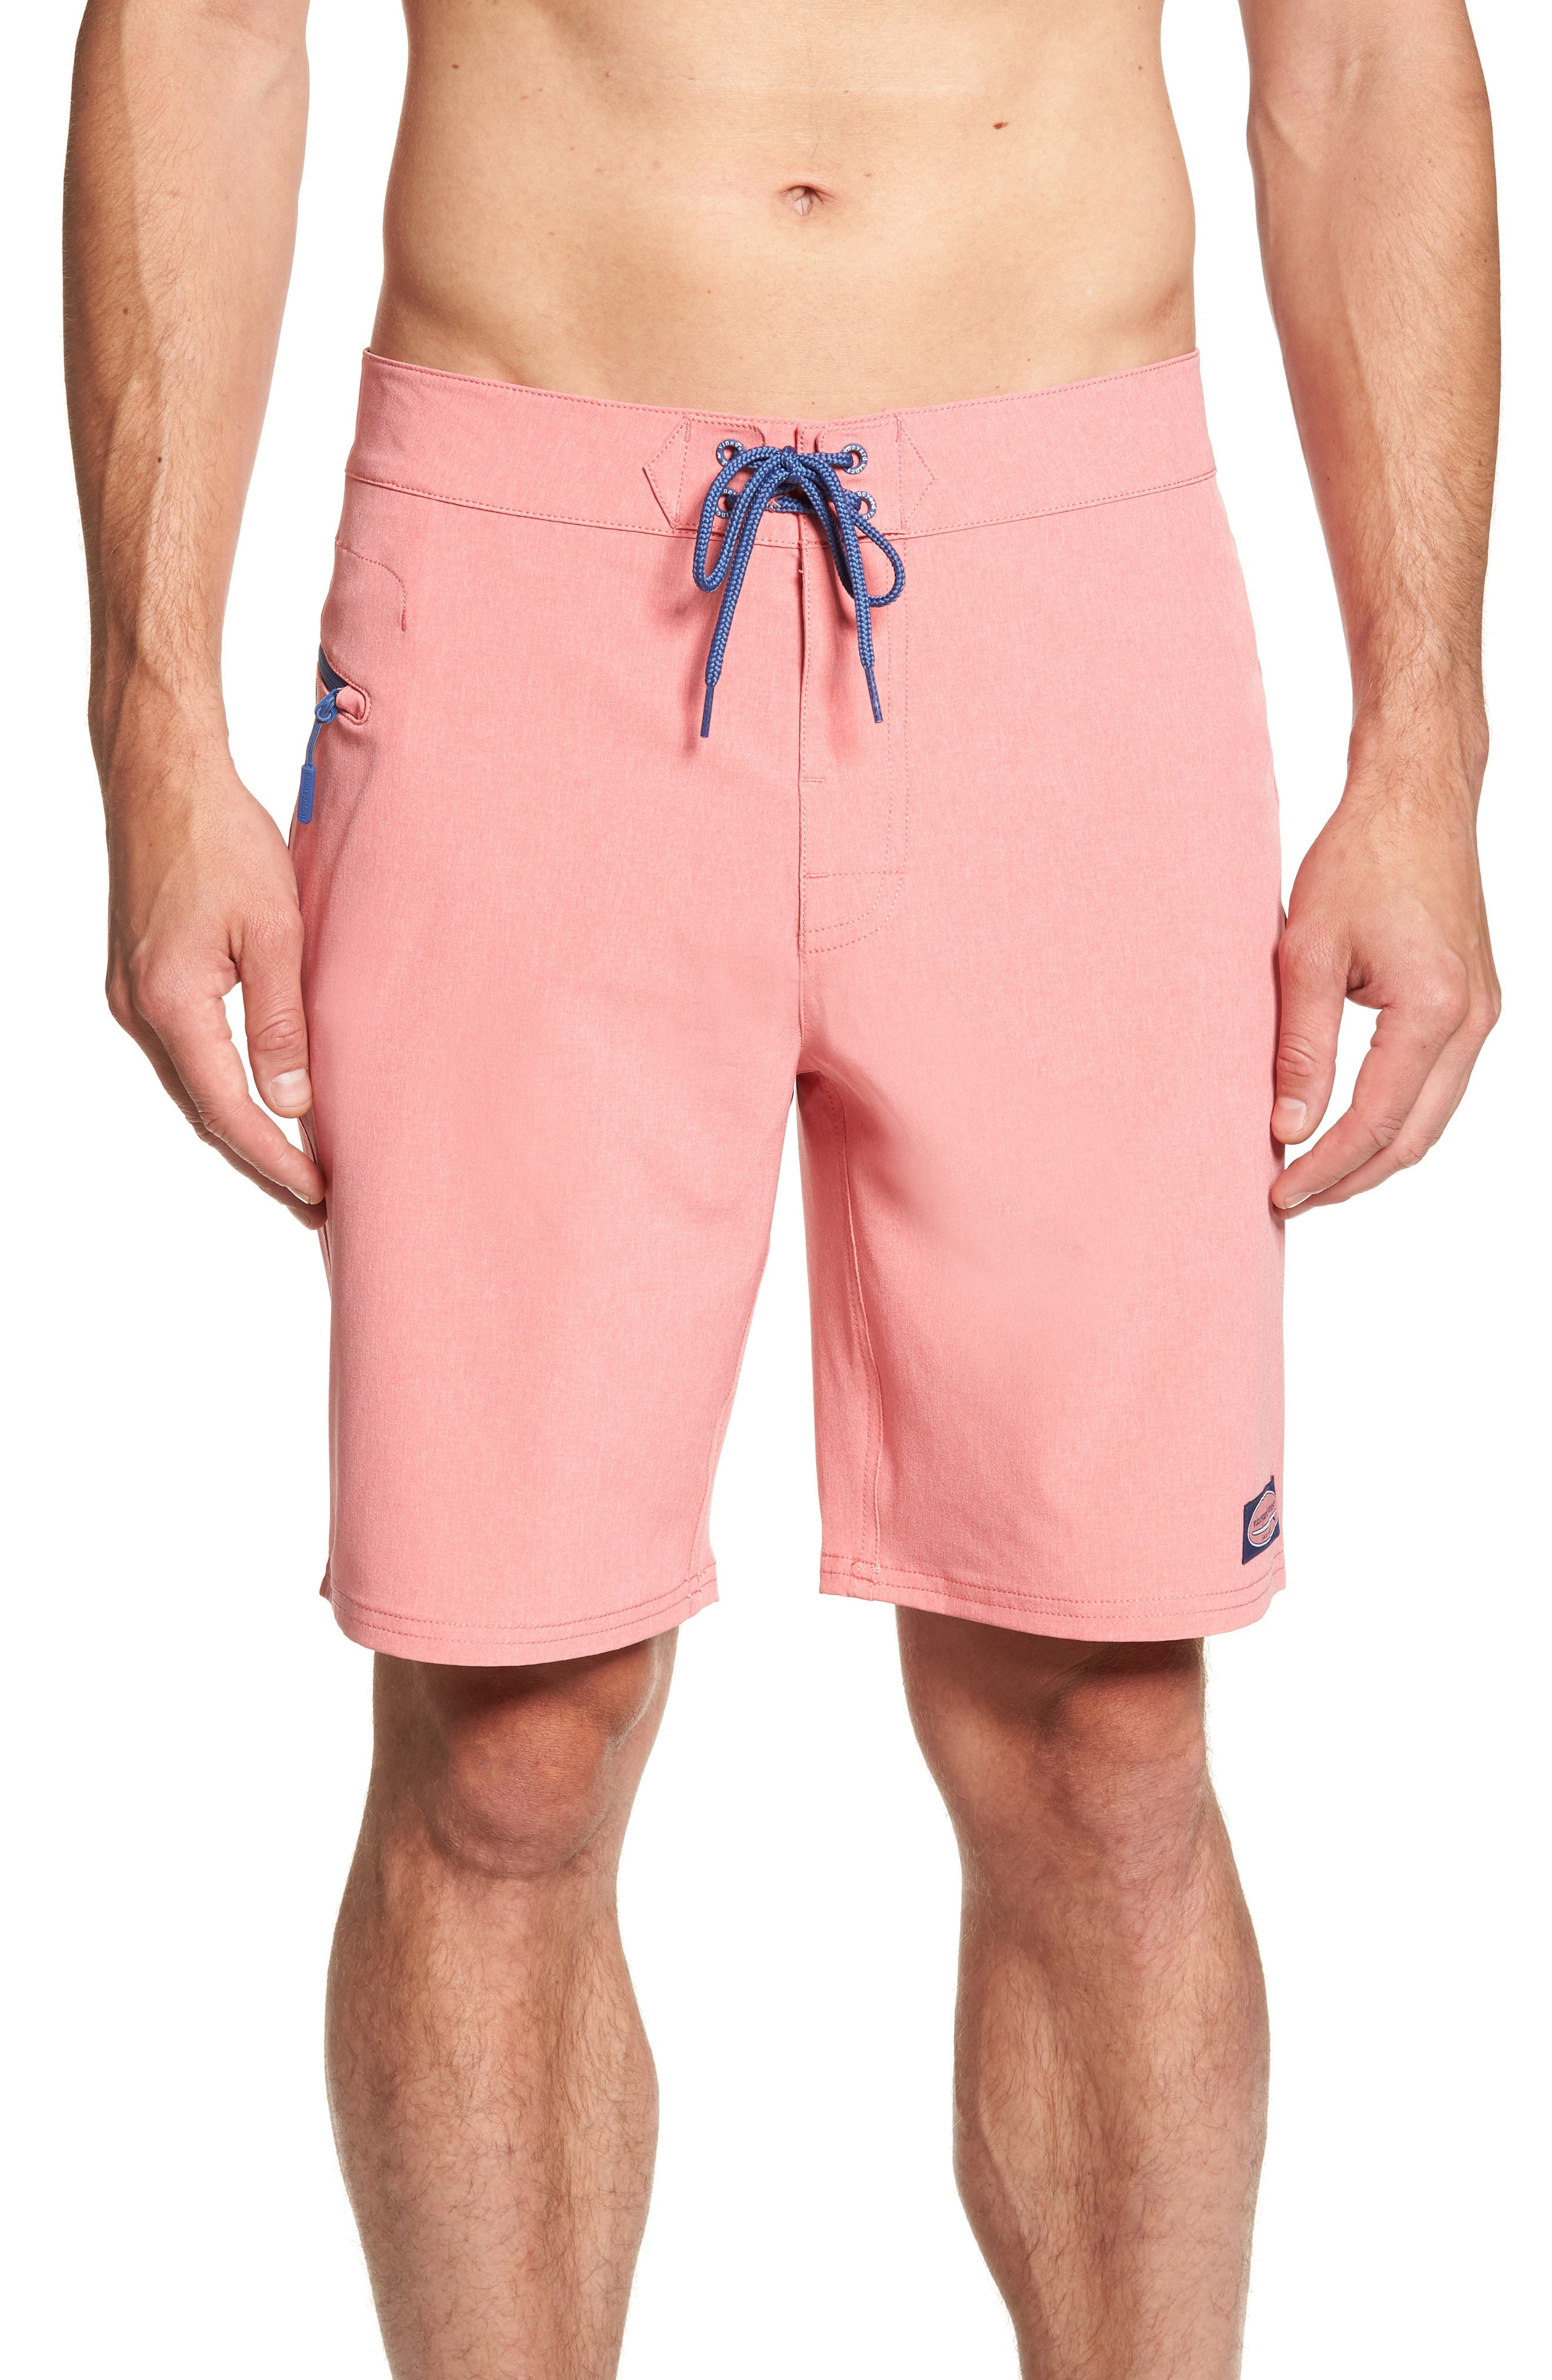 Heather Stretch Board Shorts,                             Main thumbnail 1, color,                             LOBSTER REEF